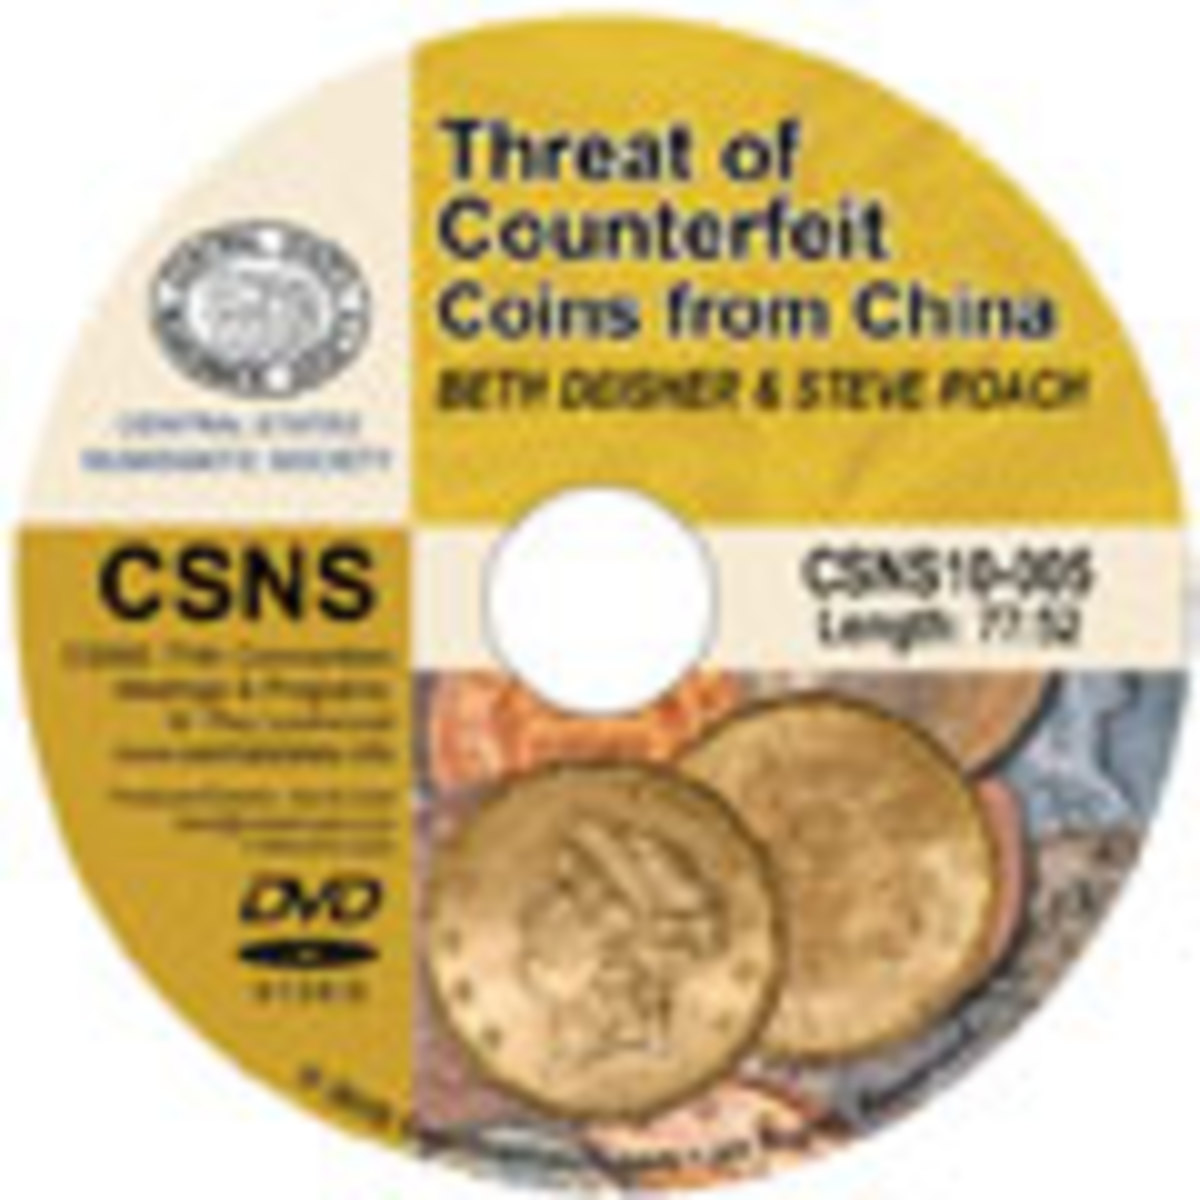 Threat of Counterfeit Coins from China